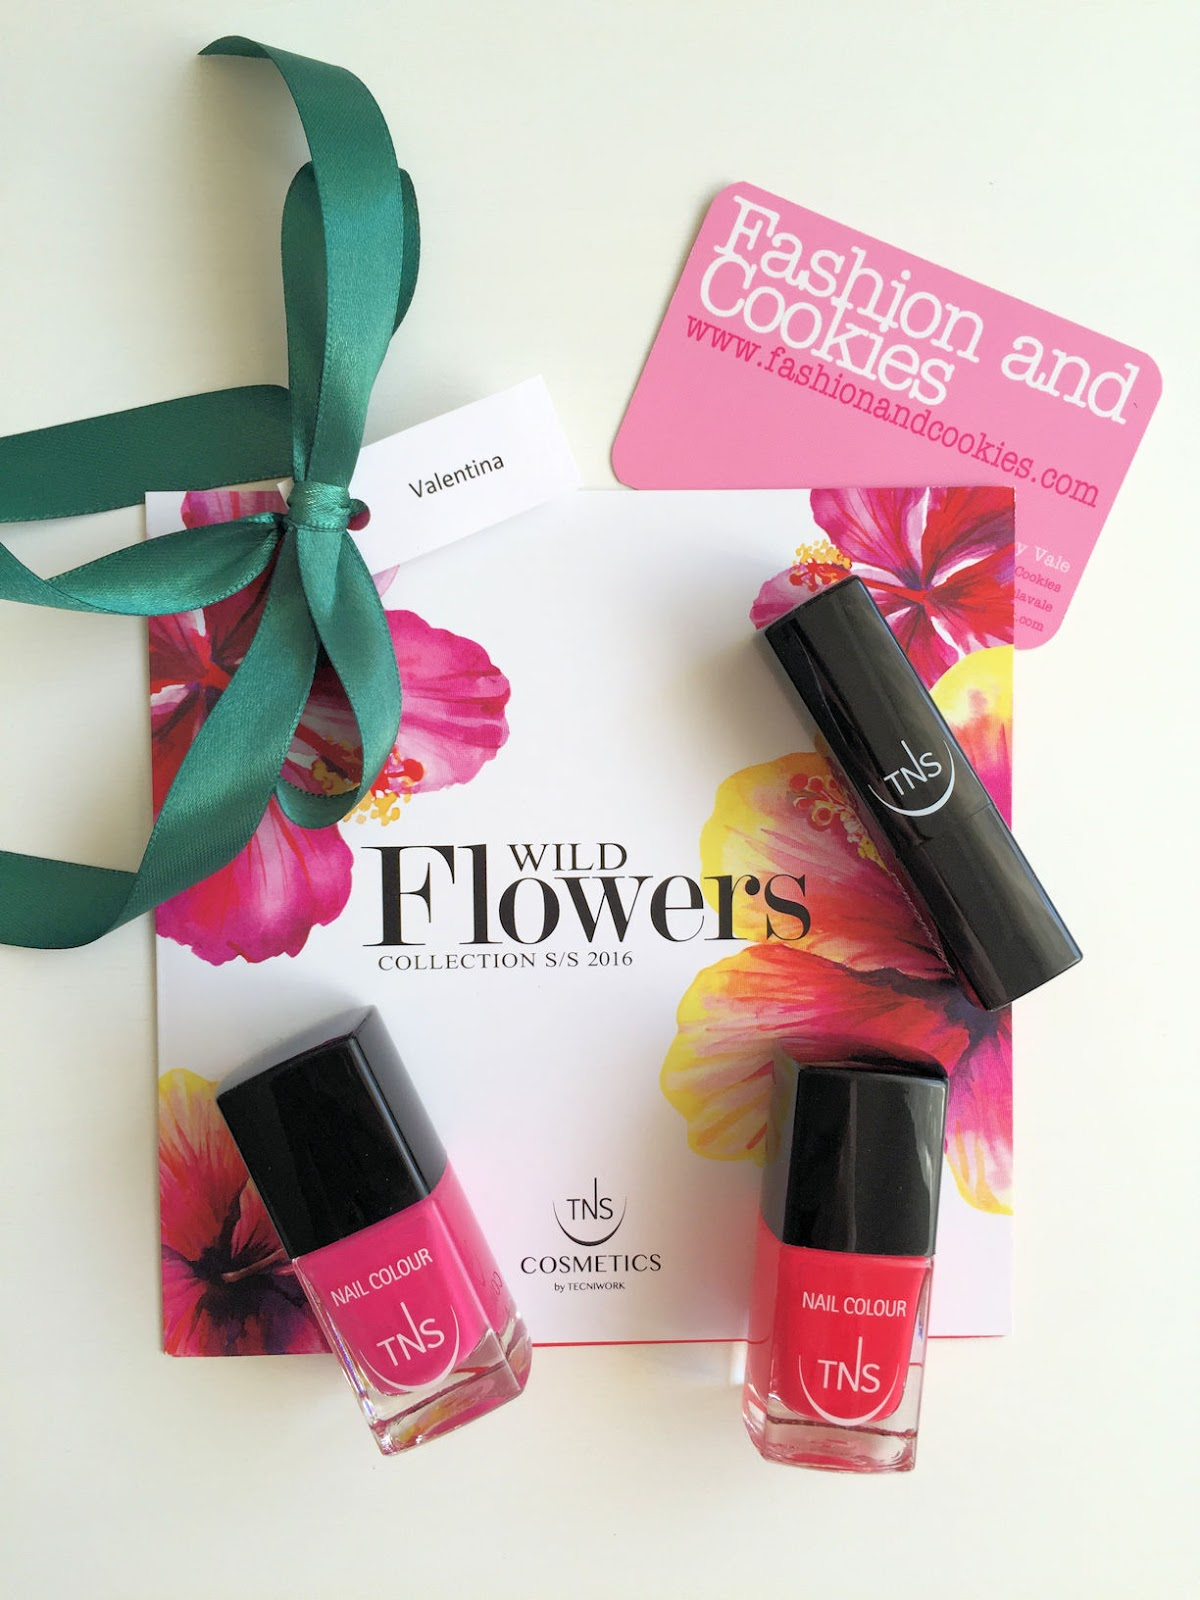 TNS Cosmetics Wild Flowers collection of nail polish and lipstick on Fashion and Cookies beauty blog, beauty blogger